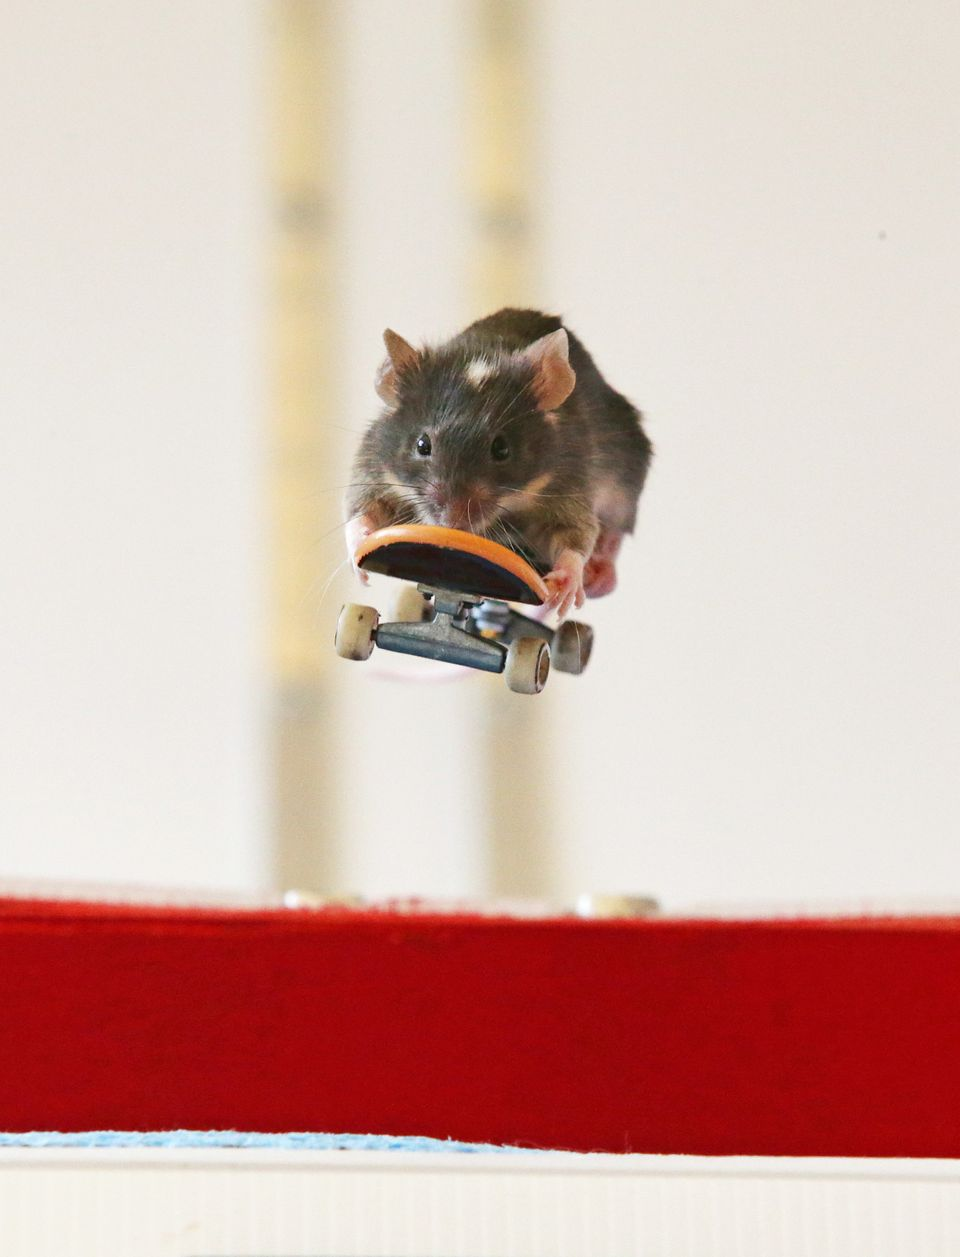 GOLD COAST, AUSTRALIA - AUGUST 2: (AUSTRALASIA & EUROPE OUT)  Pet mice ride on mouse-sized toy skateboards in a mouse-sized s